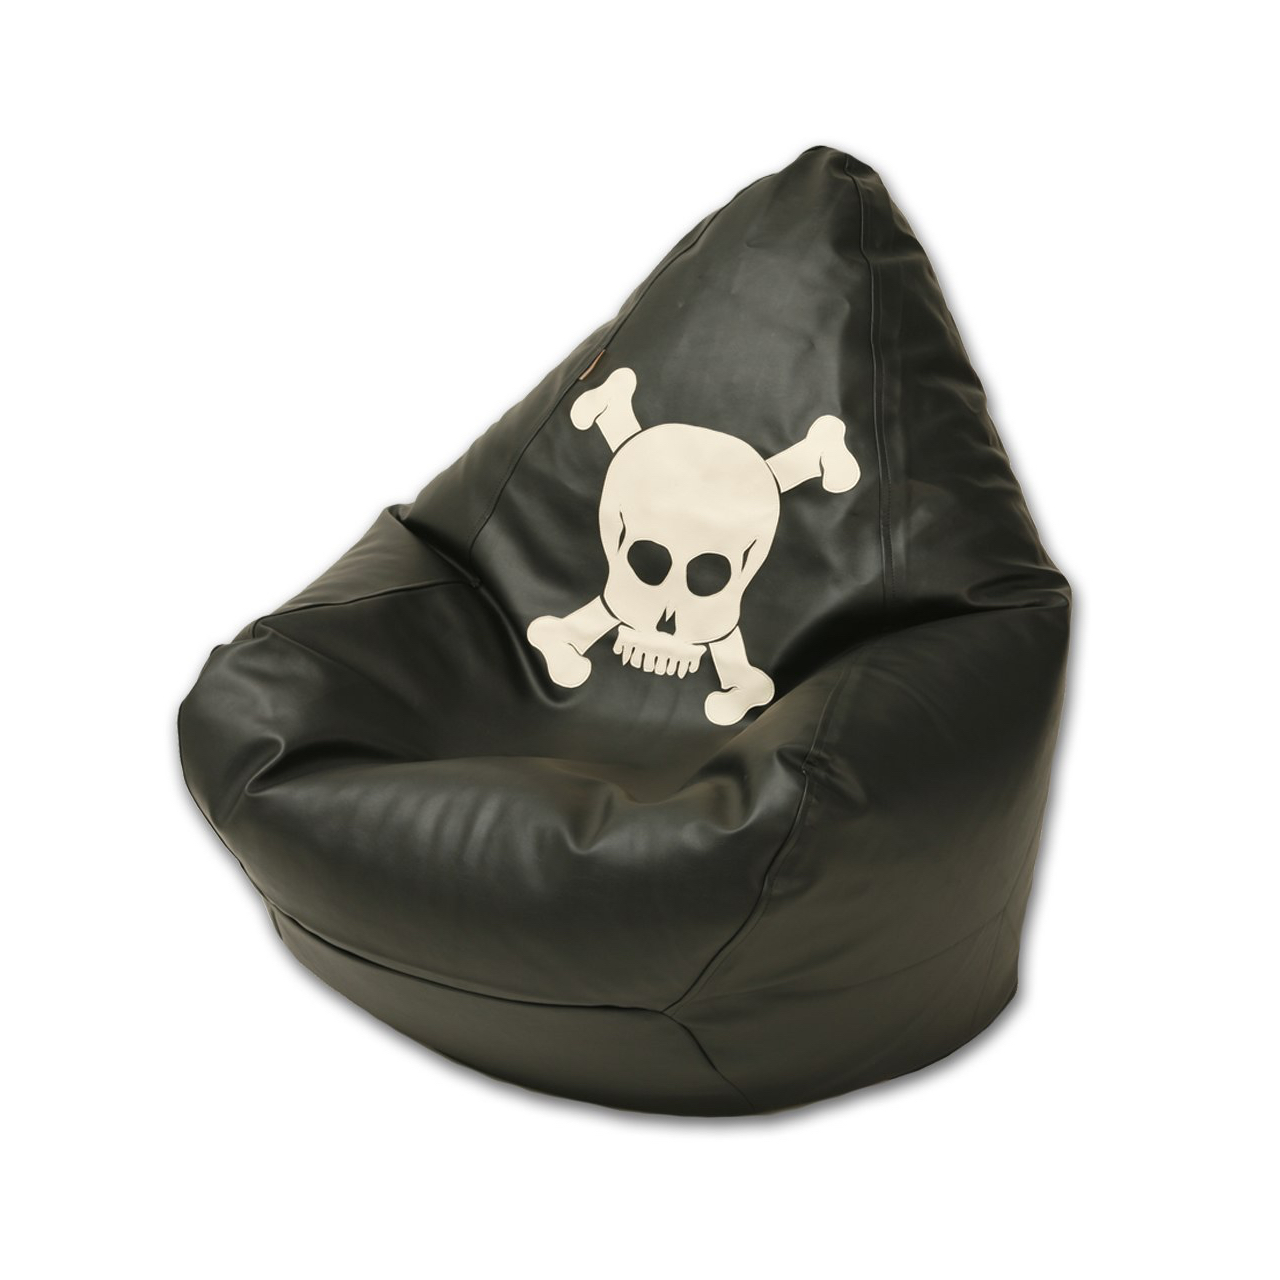 Jolly Roger Bean Bag